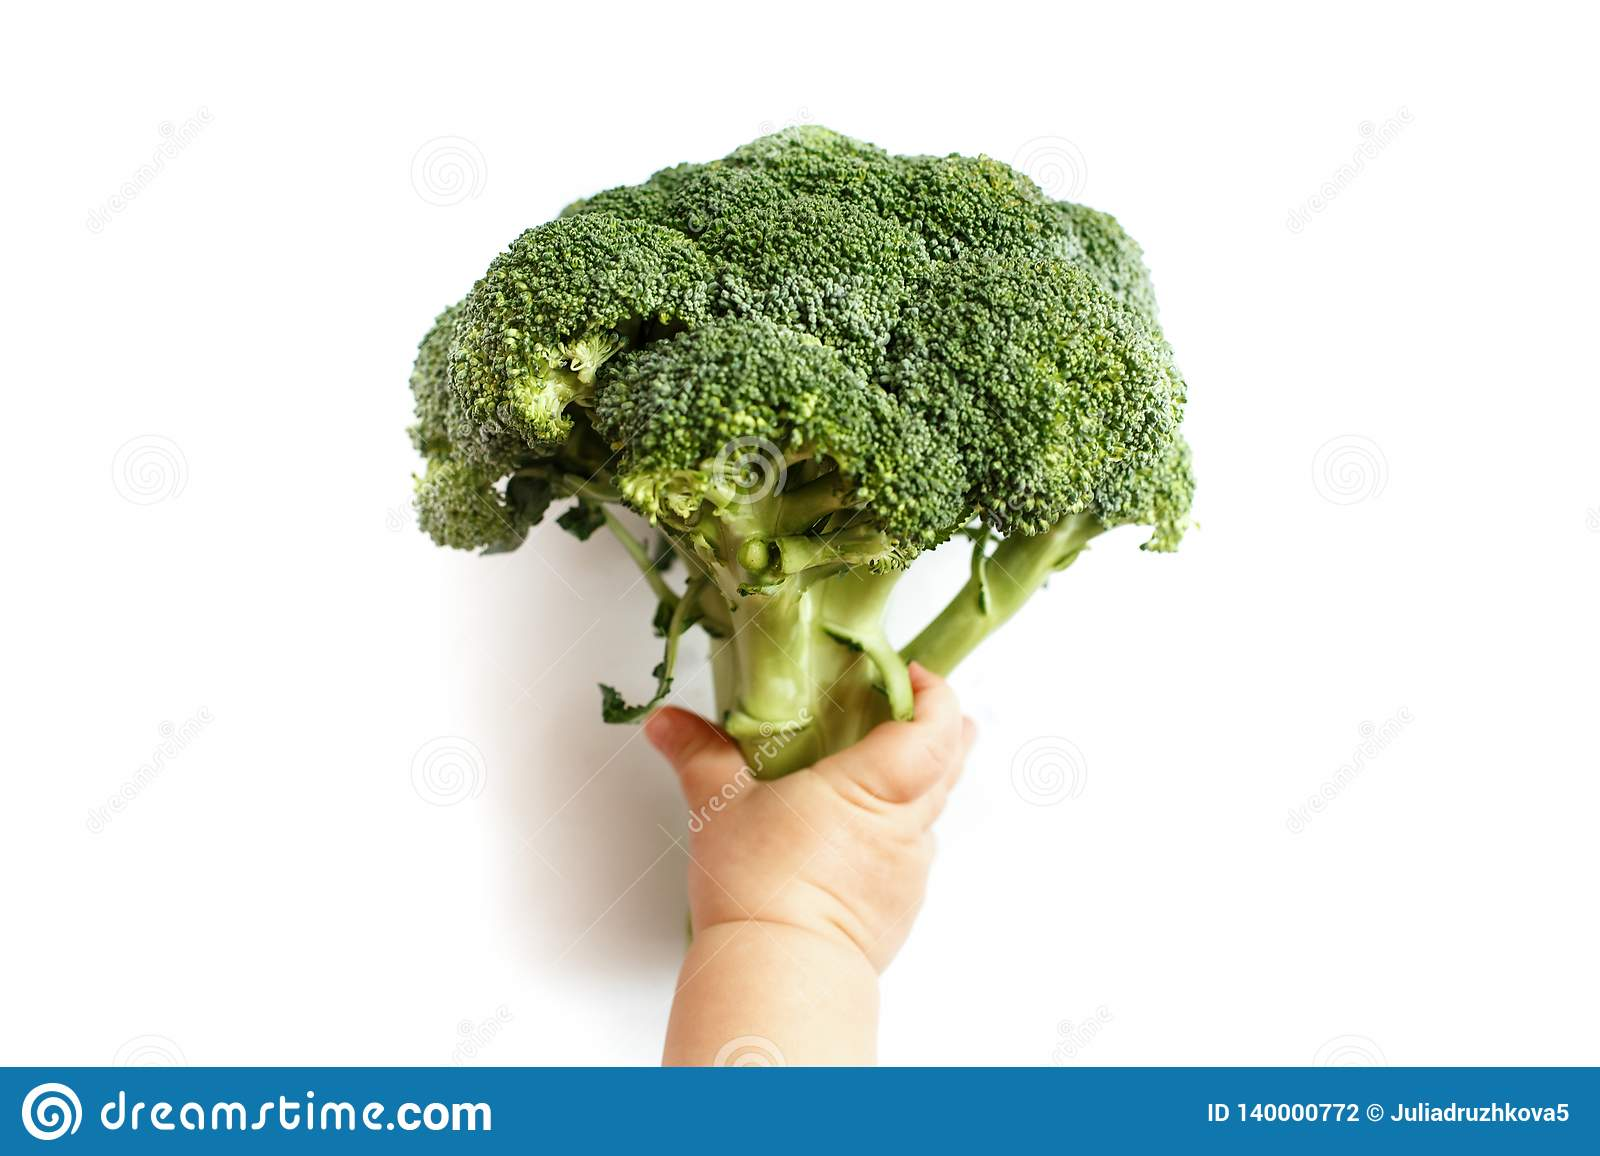 A small child holds broccoli in his hand, he is for a healthy diet